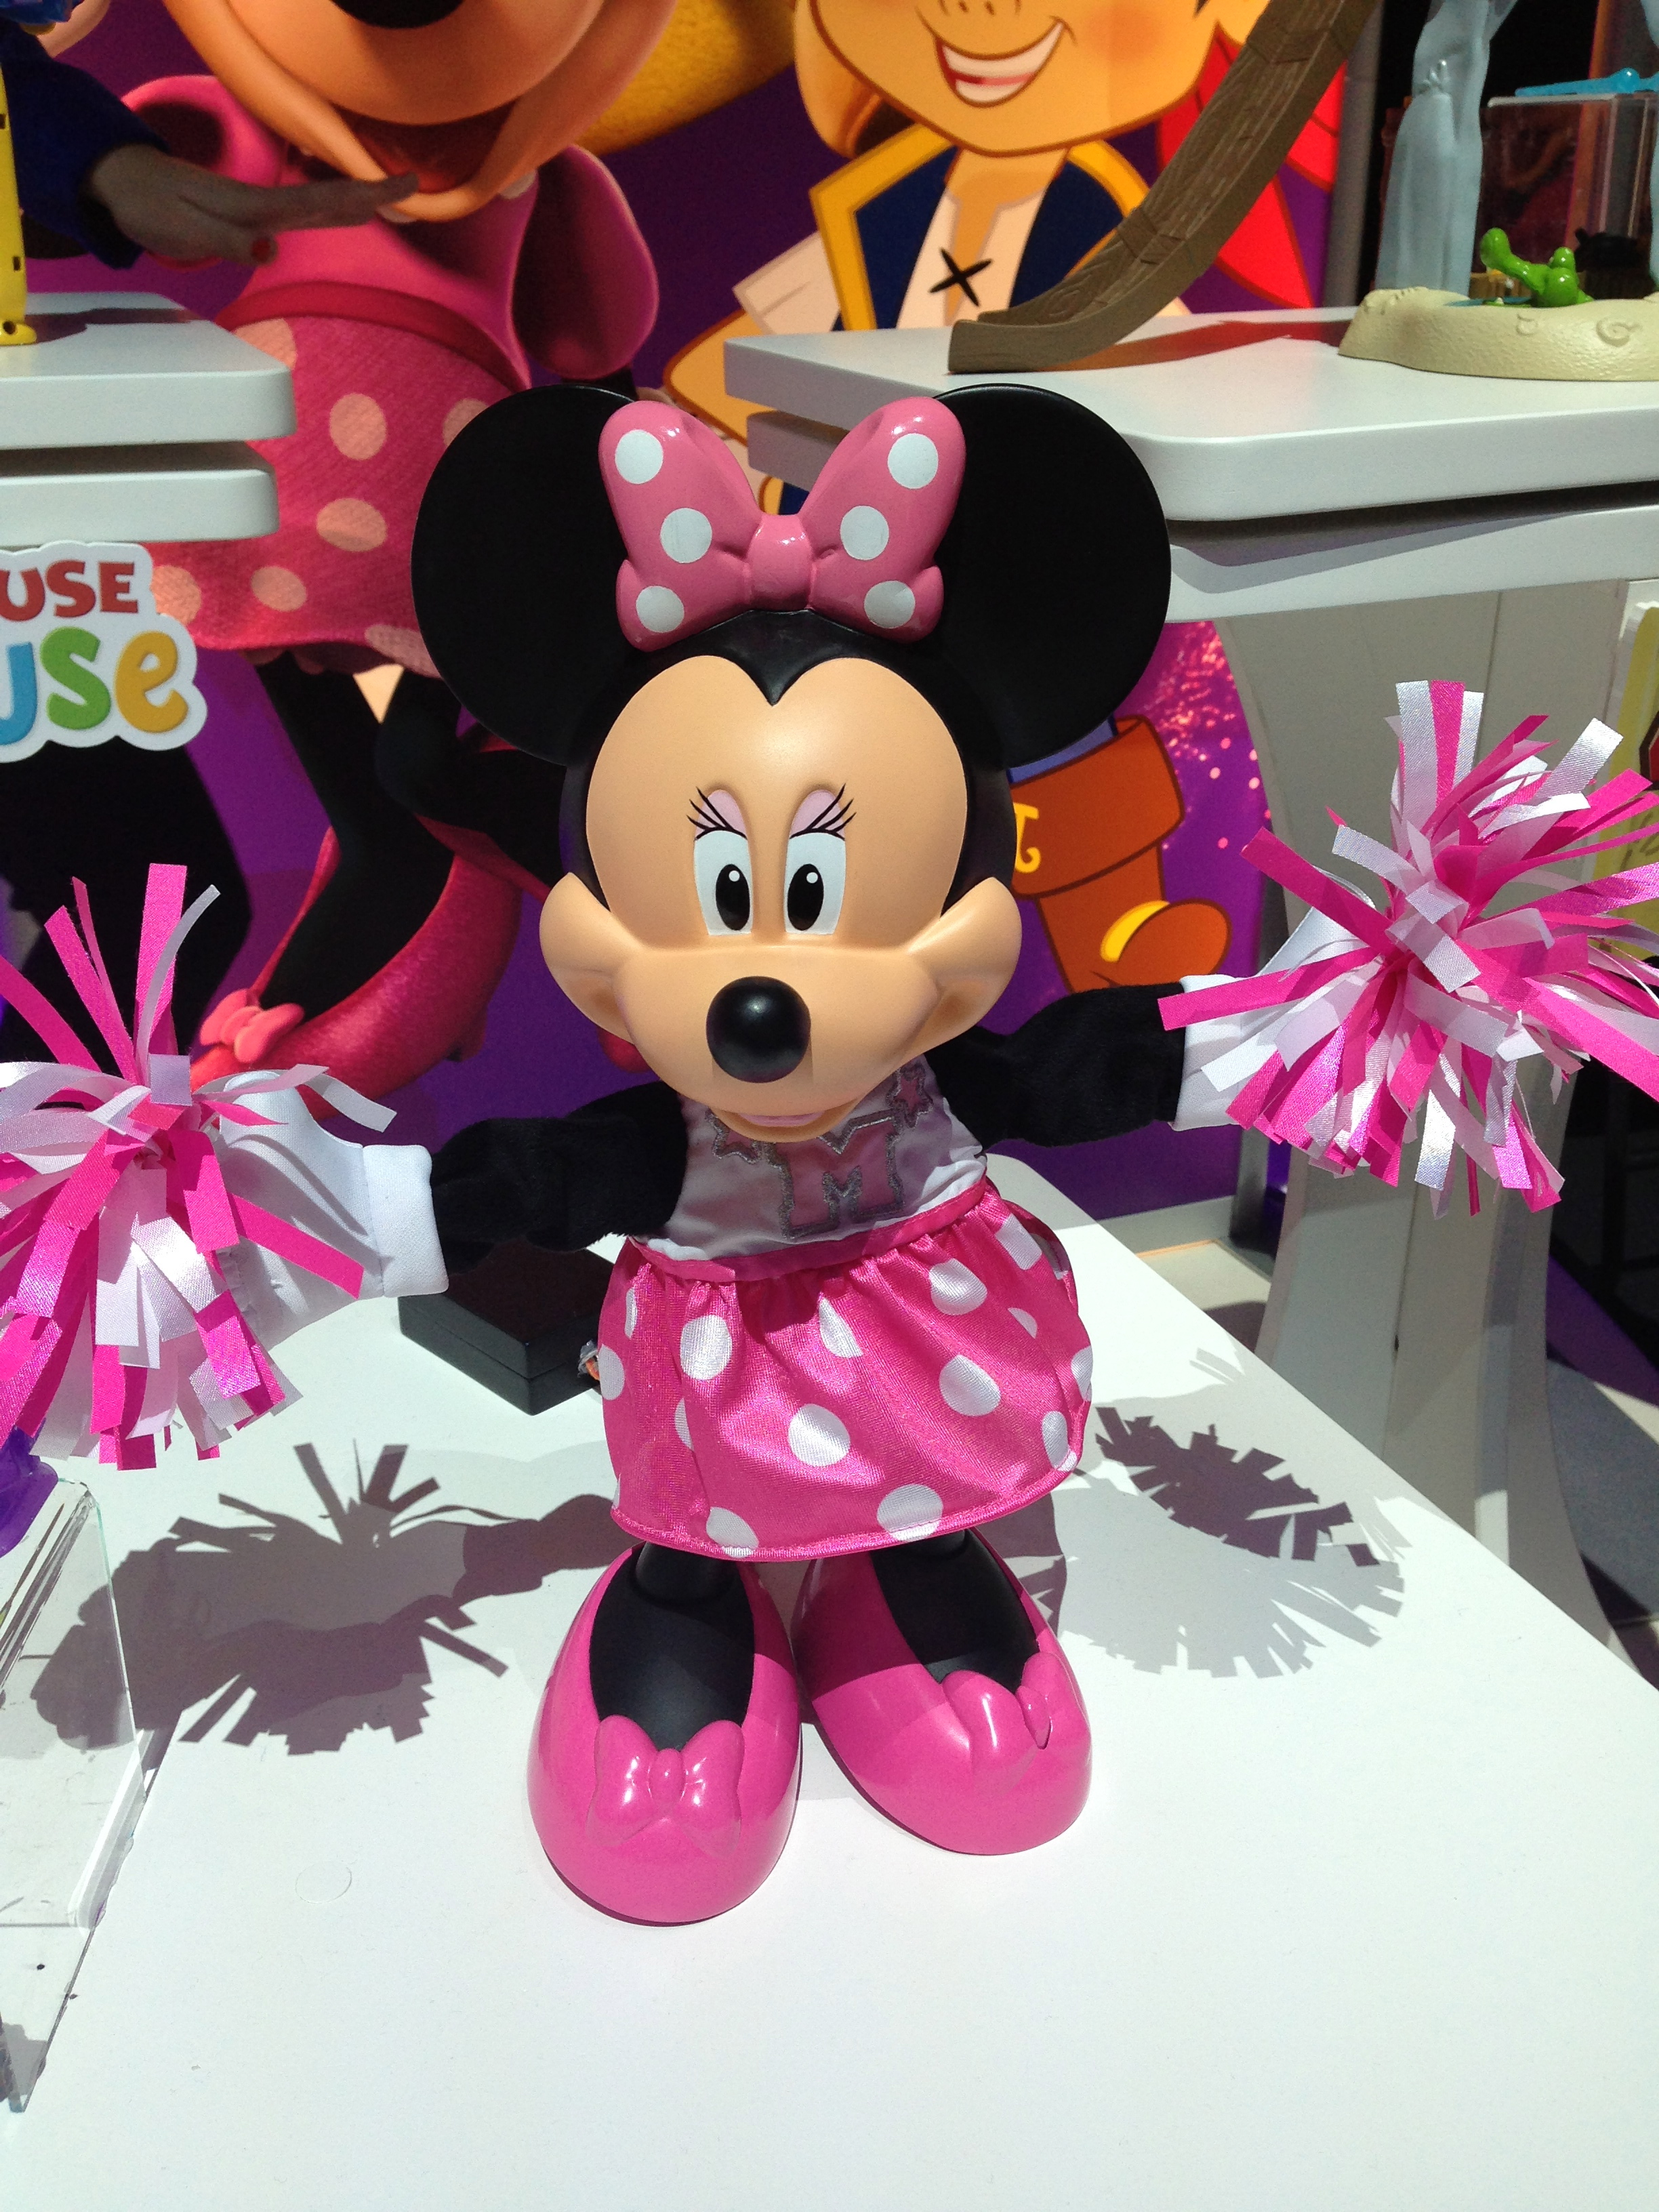 Mattel's Minnie Mouse line is expanding with a cheerleader Minnie.